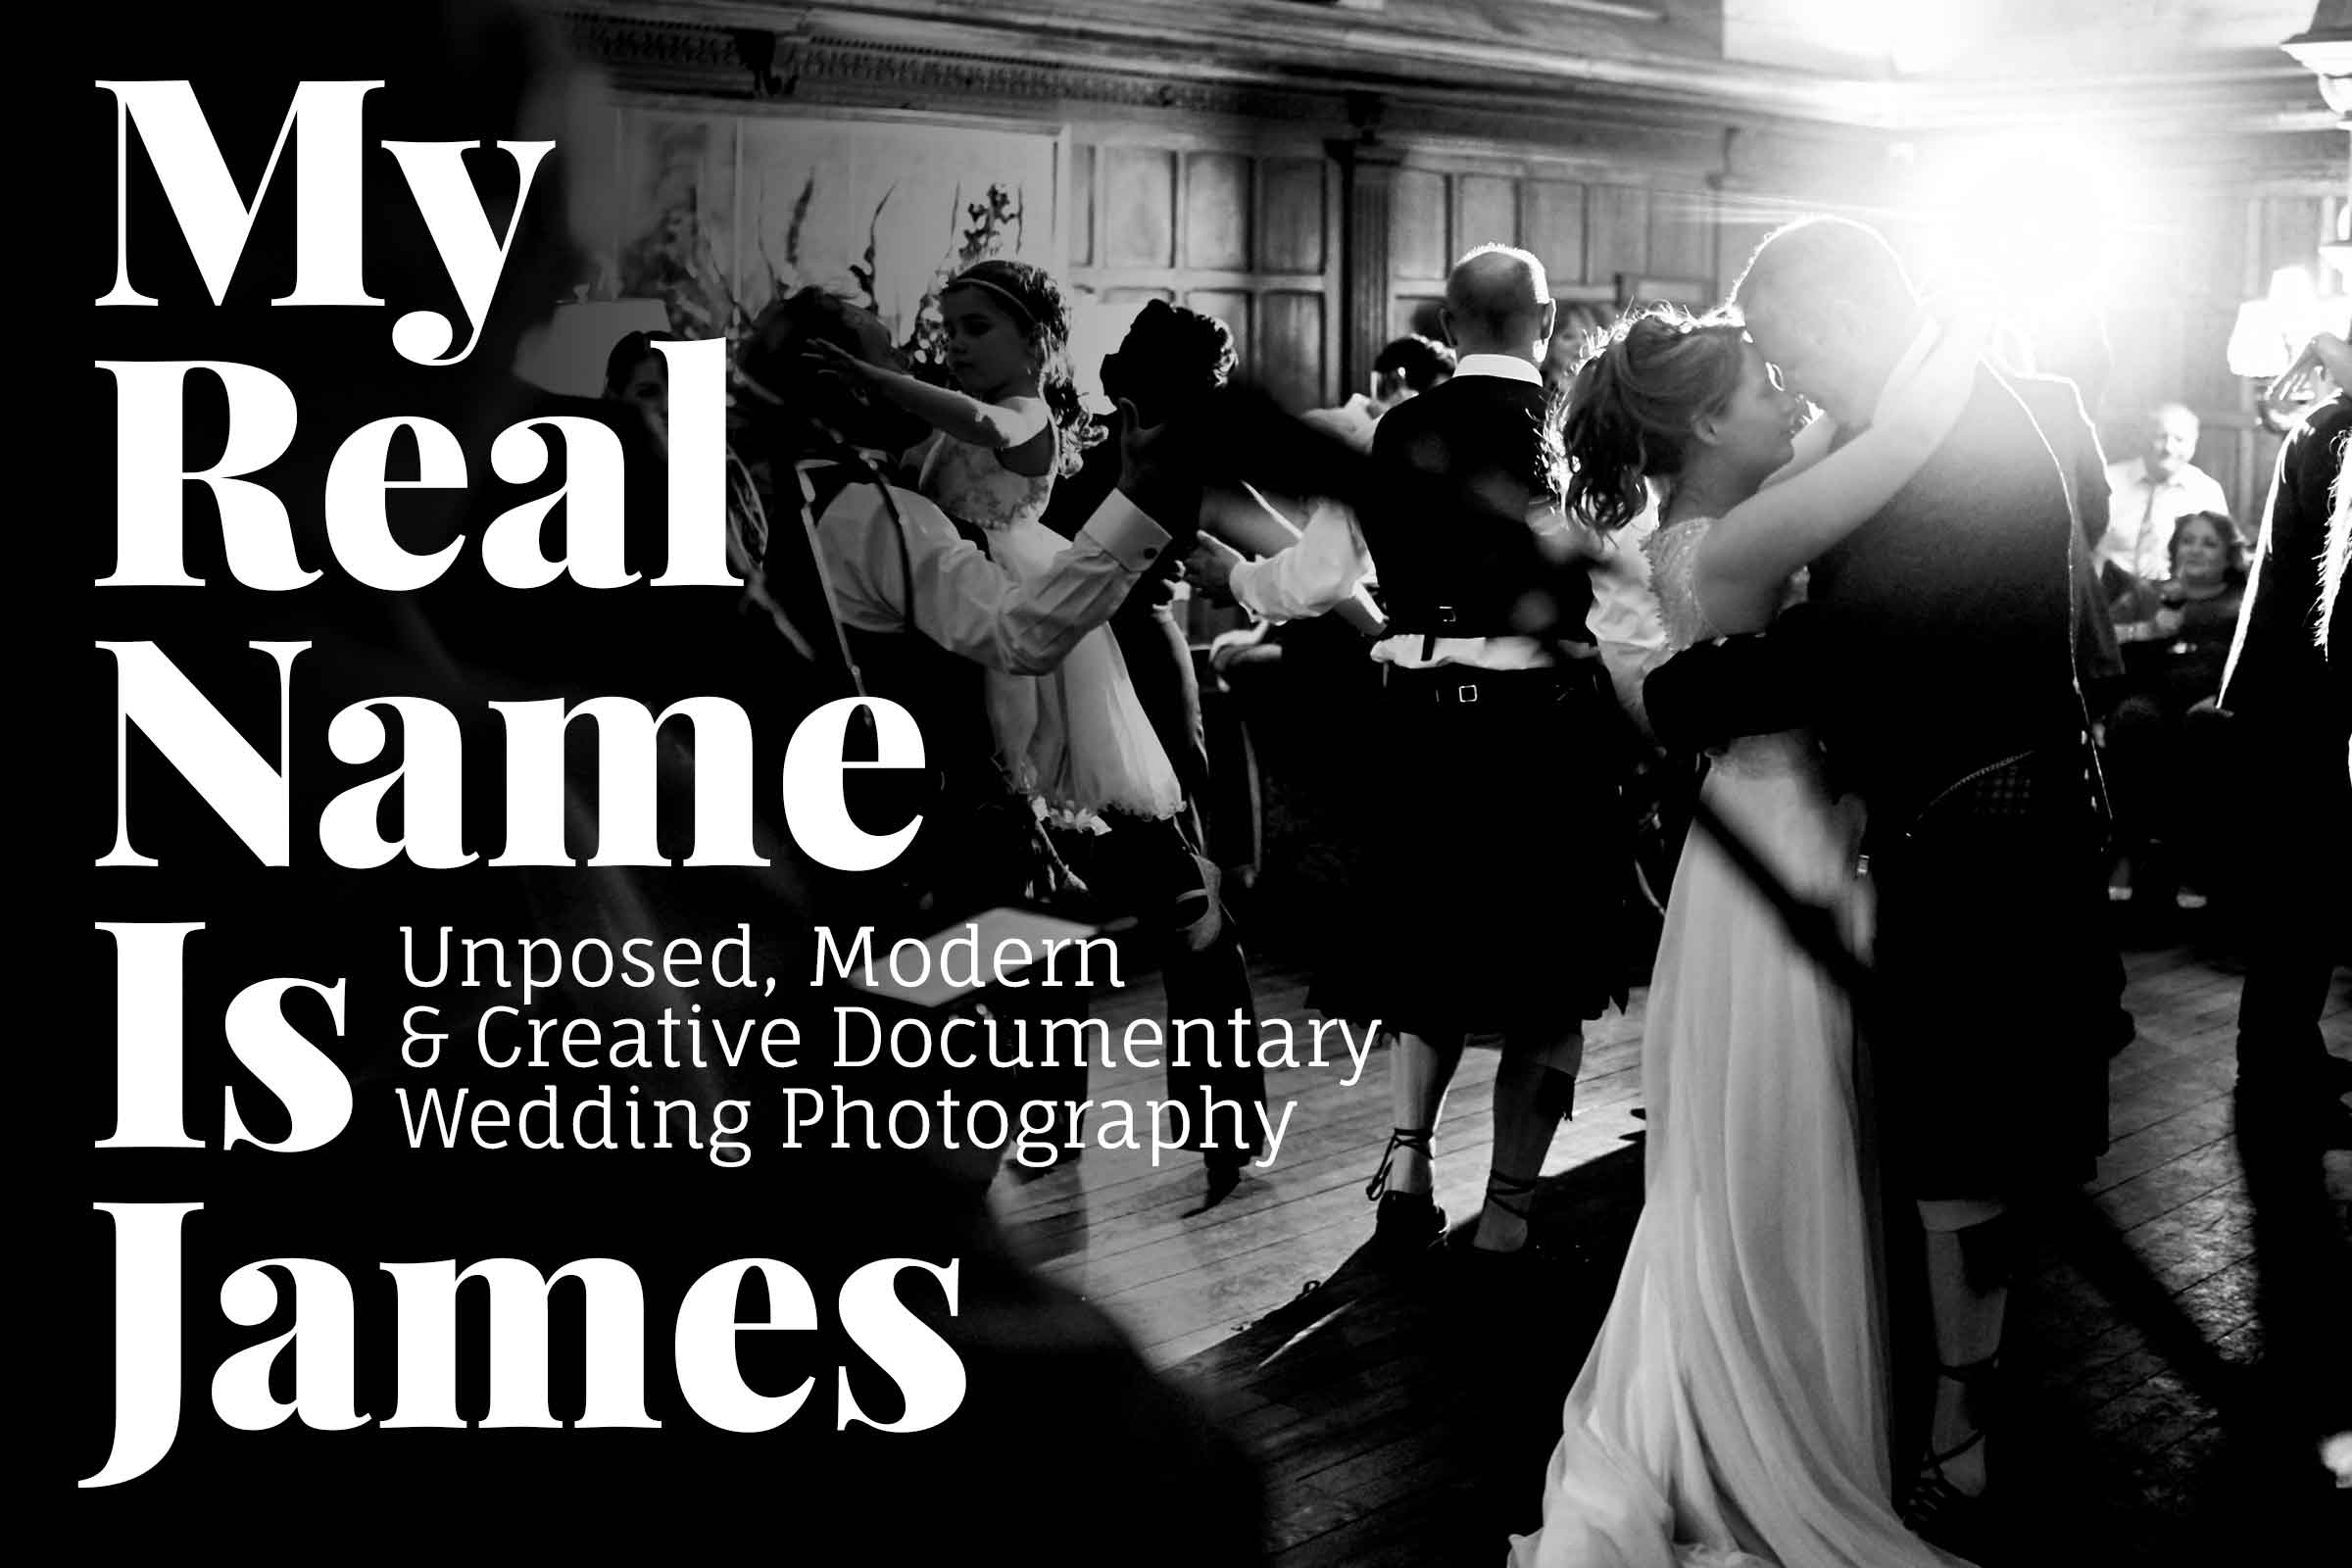 Unposed, Modern & Creative Wedding Photography Based In Limerick, Ireland // My Real Name Is James